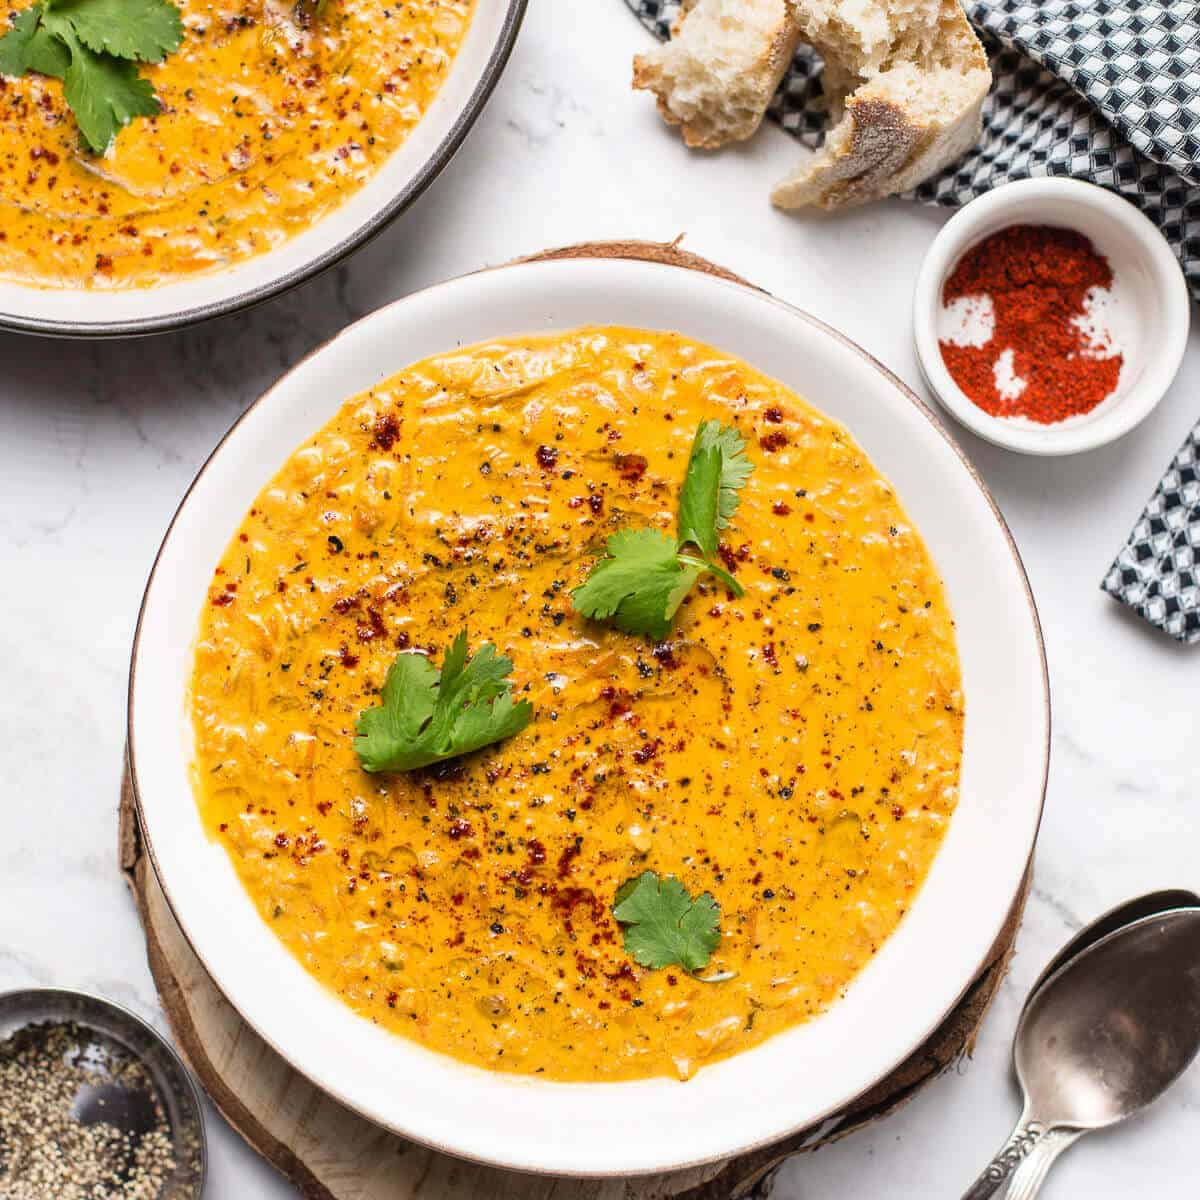 red lentil soup with cilantro in a white bowl